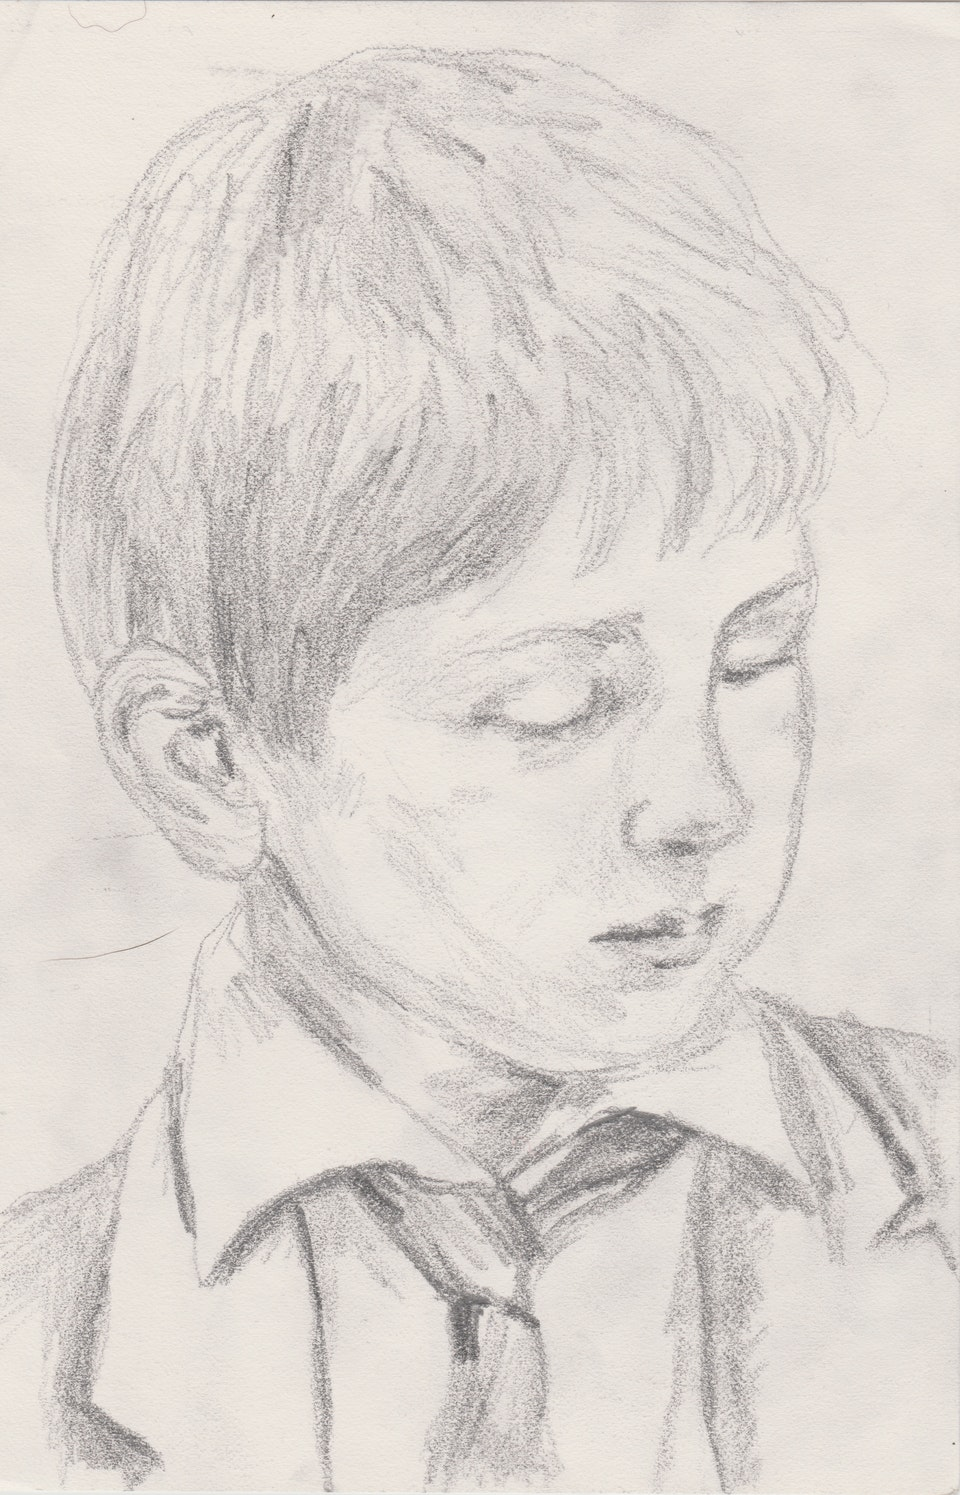 Sketches - Cameron - 2020 - Pencil on Paper - 15 x 21 cm A5